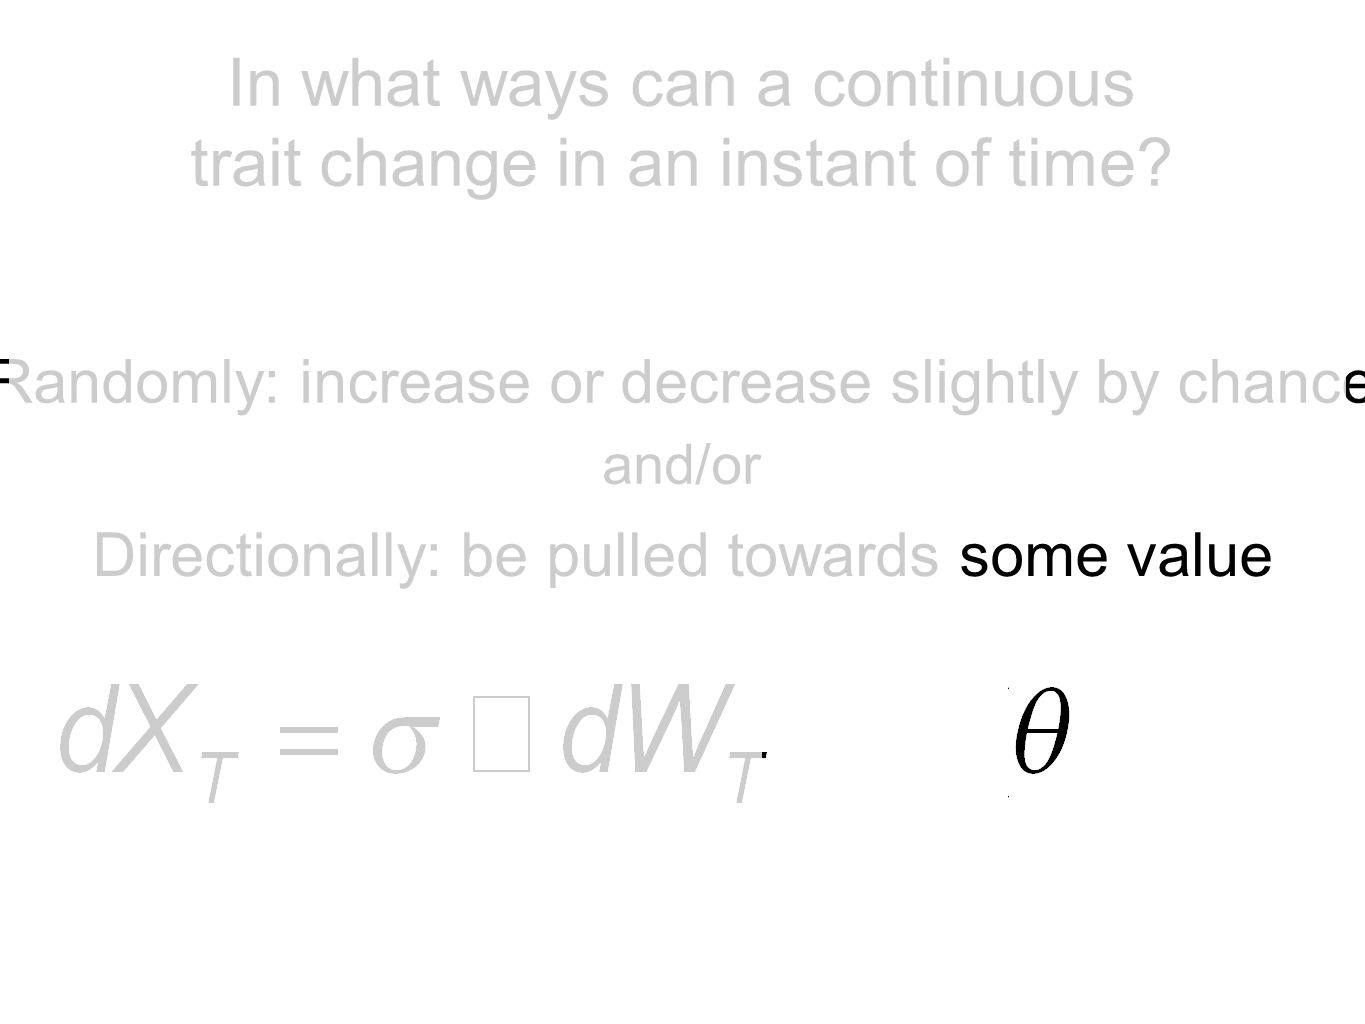 Randomly: increase or decrease slightly by chance Directionally: be pulled towards some value and/or Adds the entire difference In what ways can a continuous trait change in an instant of time?